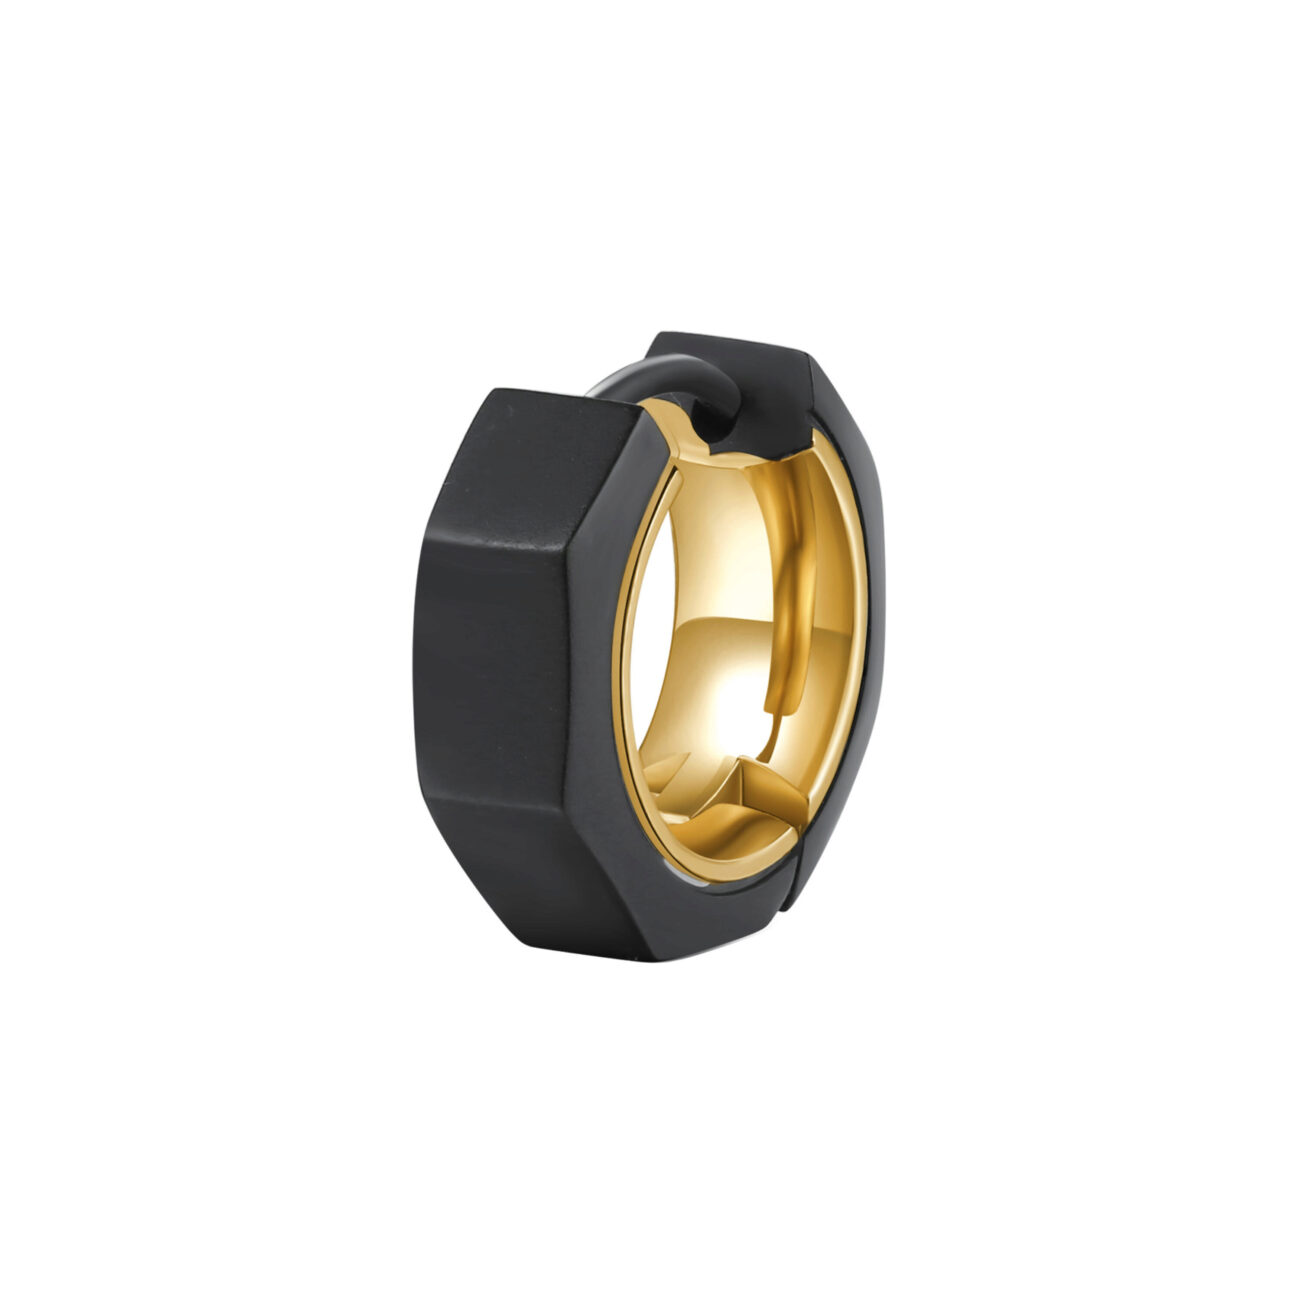 Single earring in 316L stainless steel bolt-shaped with black finishes and gold finishes.